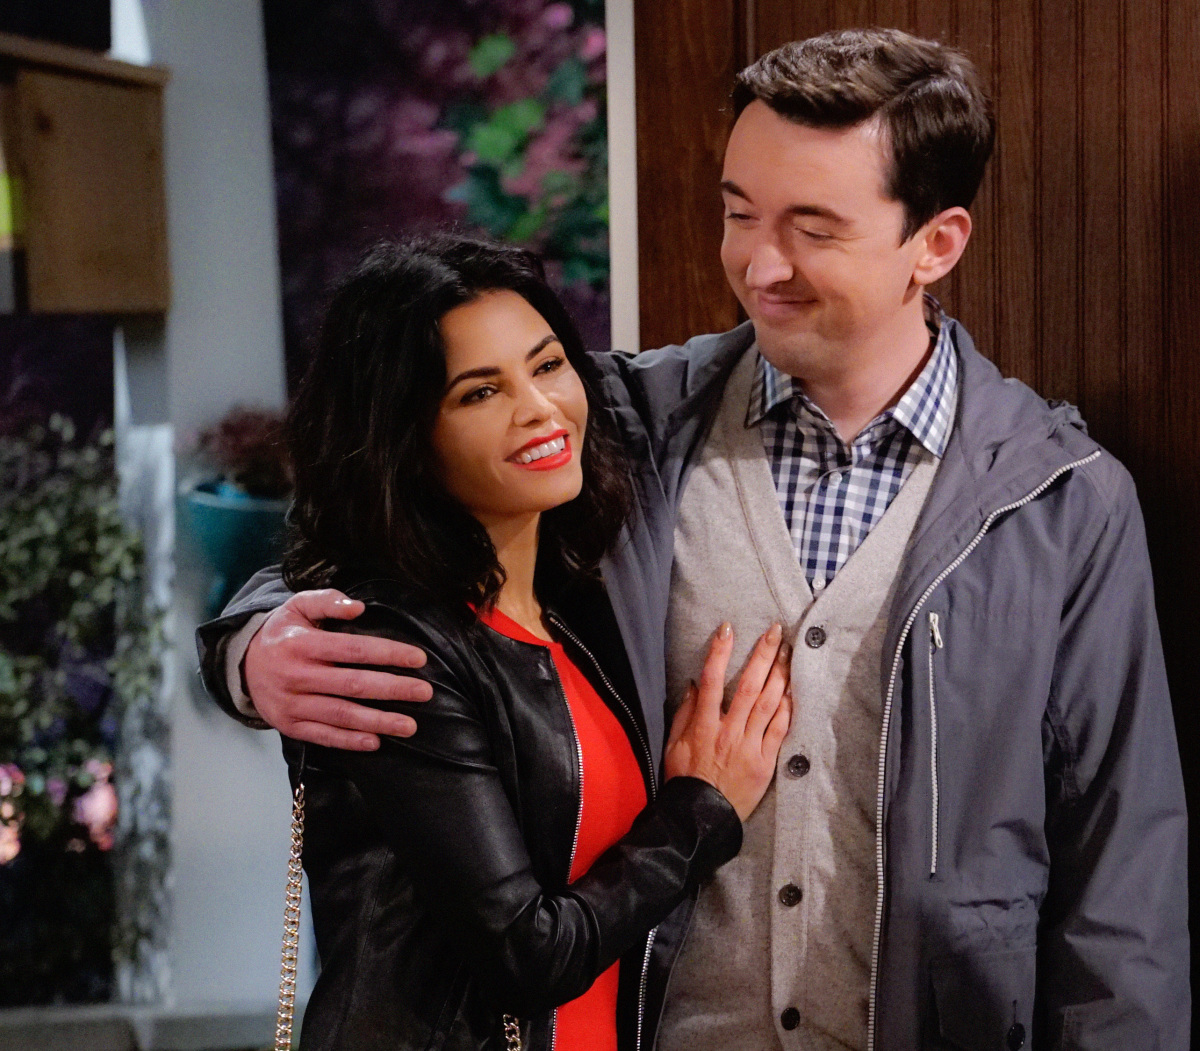 """The A Team"" -- Adam and Andi are shocked when they finally meet Lowell's wife, Jen (Jenna Dewan Tatum), on MAN WITH A PLAN, Monday, March 13 (8:30-9:00 PM, ET/PT) on the CBS Television Network. Picture (L-R) Jenna Dewan Tatum	as Jen and Matt Cook as Lowell Photo: Cliff Lipson/CBS ©2017 CBS Broadcasting, Inc. All Rights Reserved"